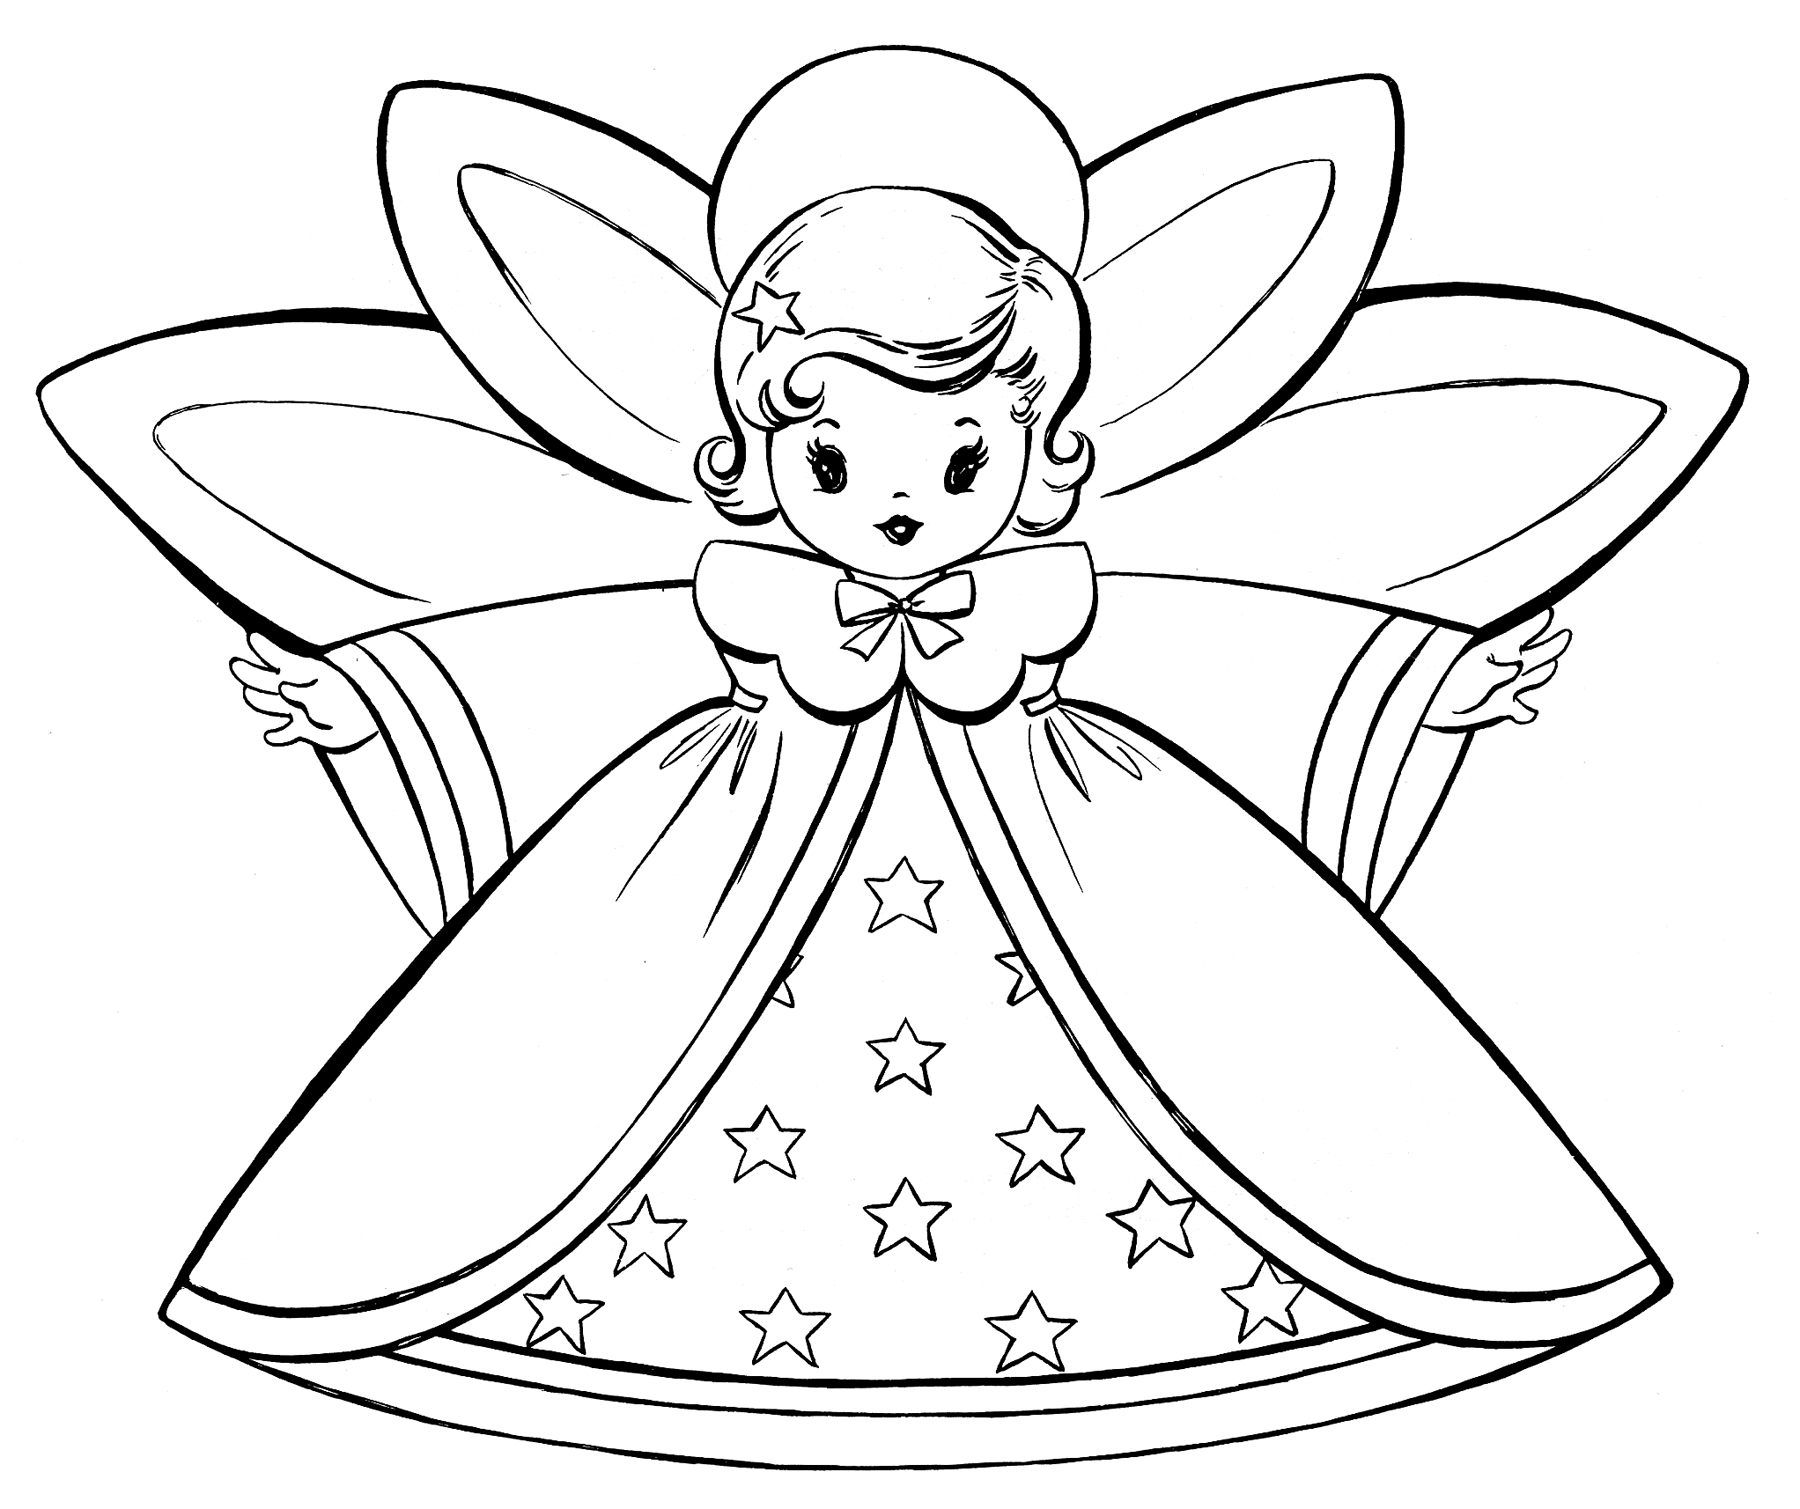 angel pictures to color angels coloring pages kidsuki to angel pictures color